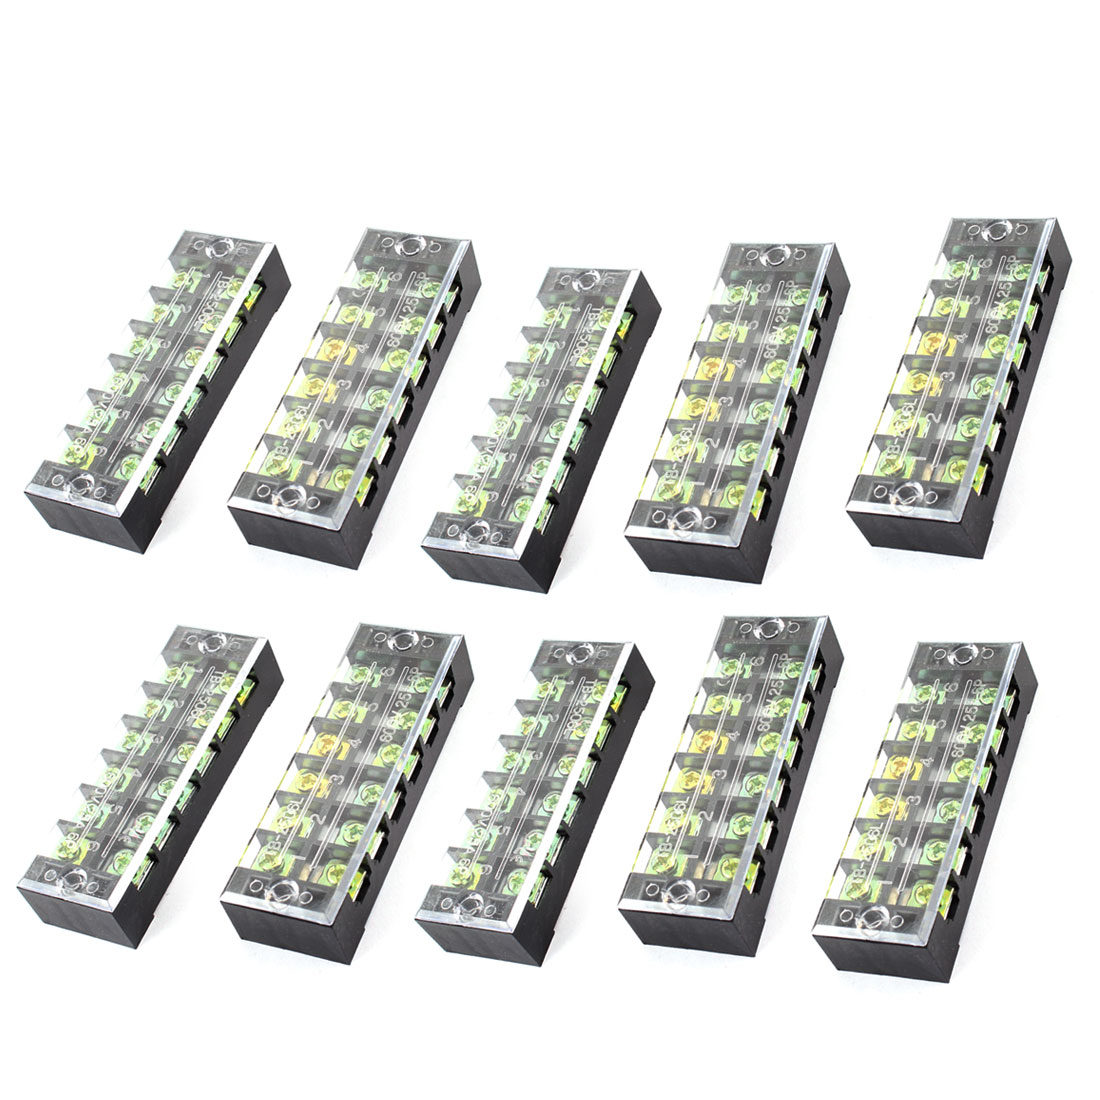 600V 25A Double Row 6 Position Screw Terminal Barrier Block Black 10 Pcs